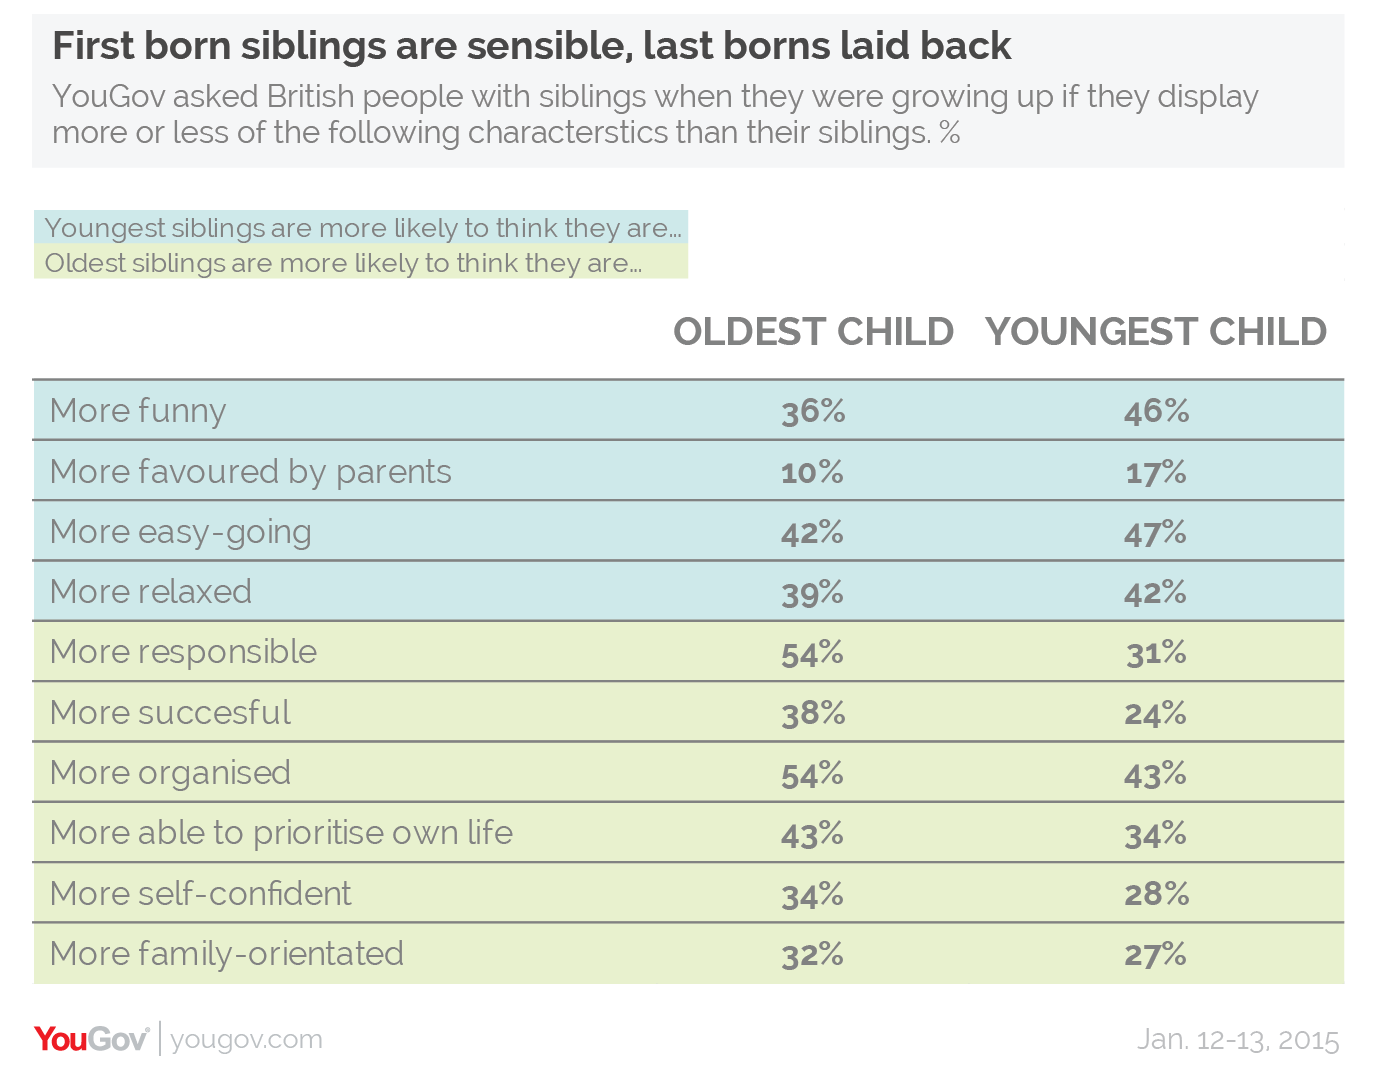 YouGov | It's true: birth order shapes personality